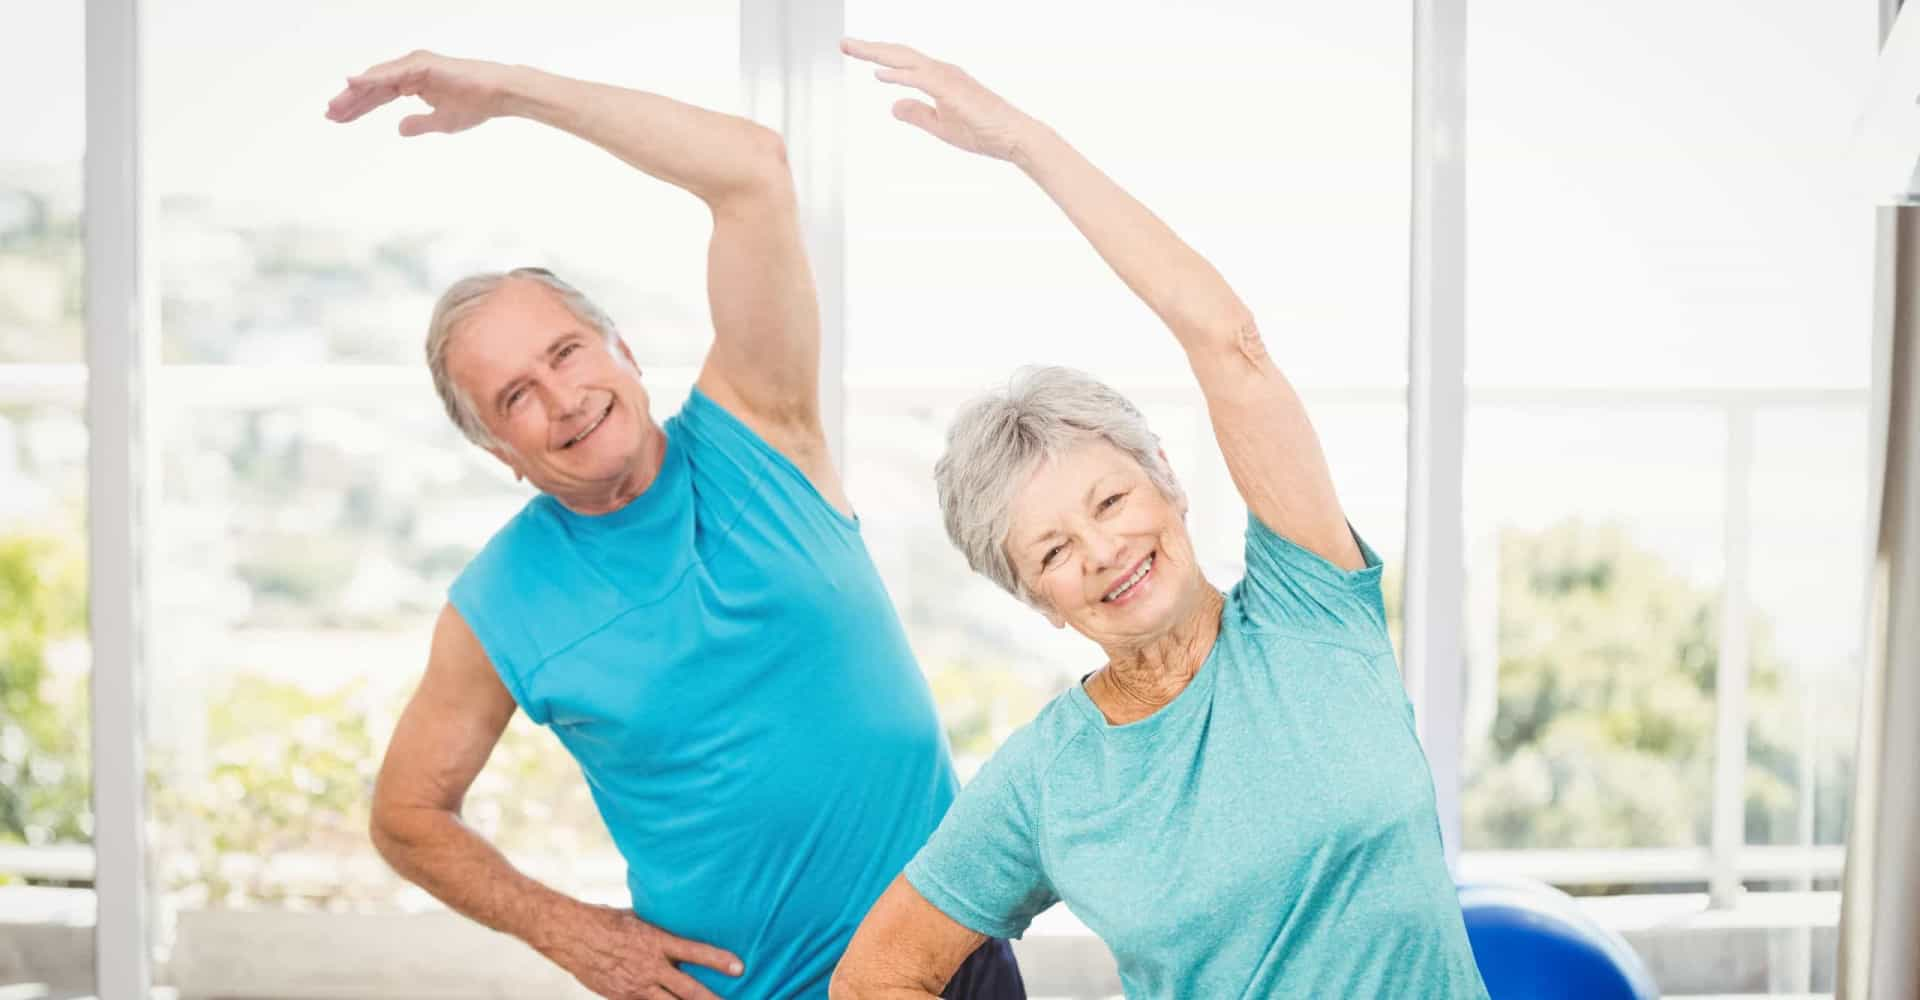 A guide to staying fit and healthy in middle age